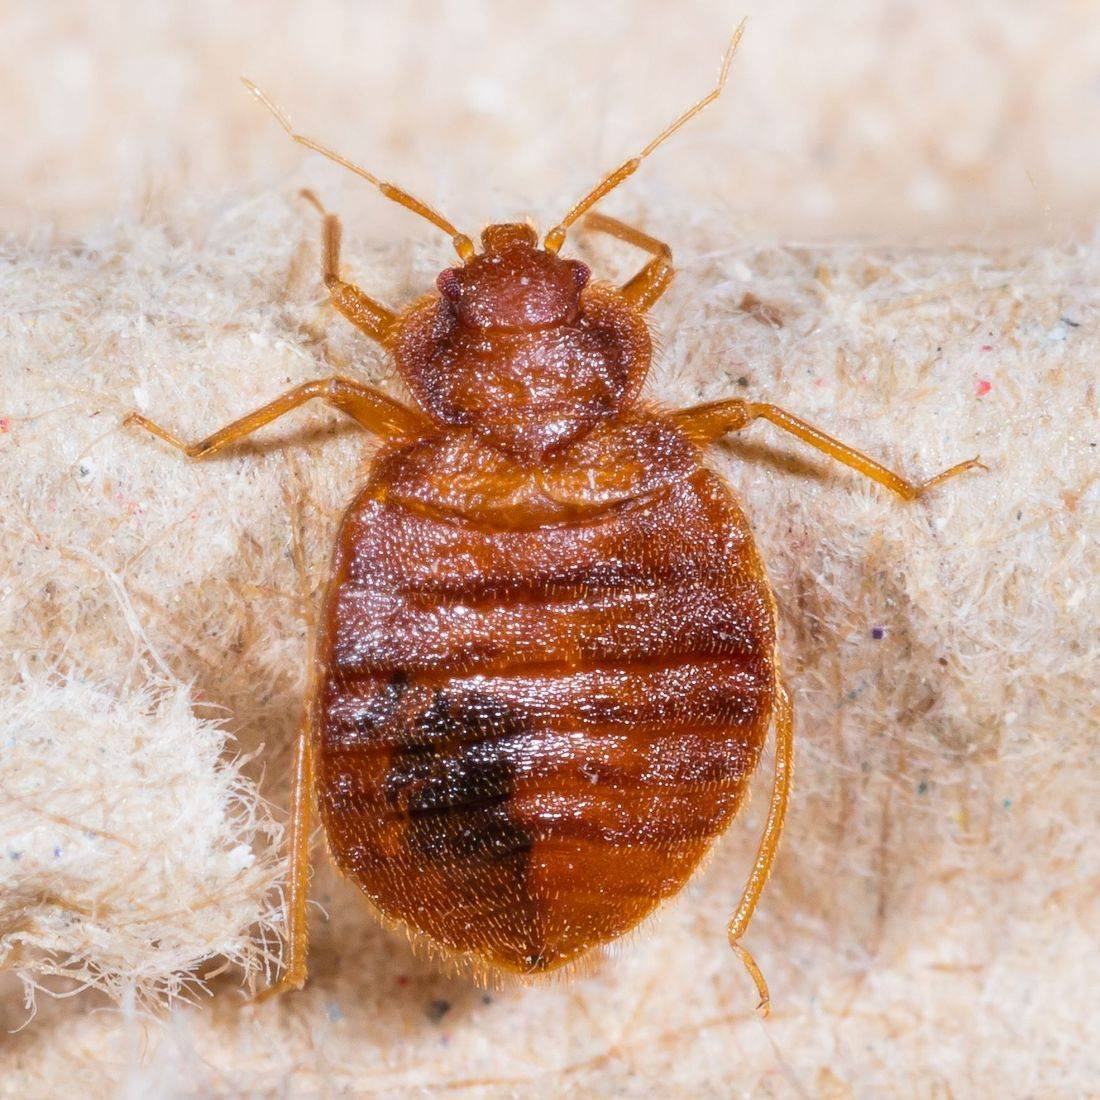 PestAway treats bed bug infestations in Greenock, Port Glasgow, Gourock, Largs and Bishopton